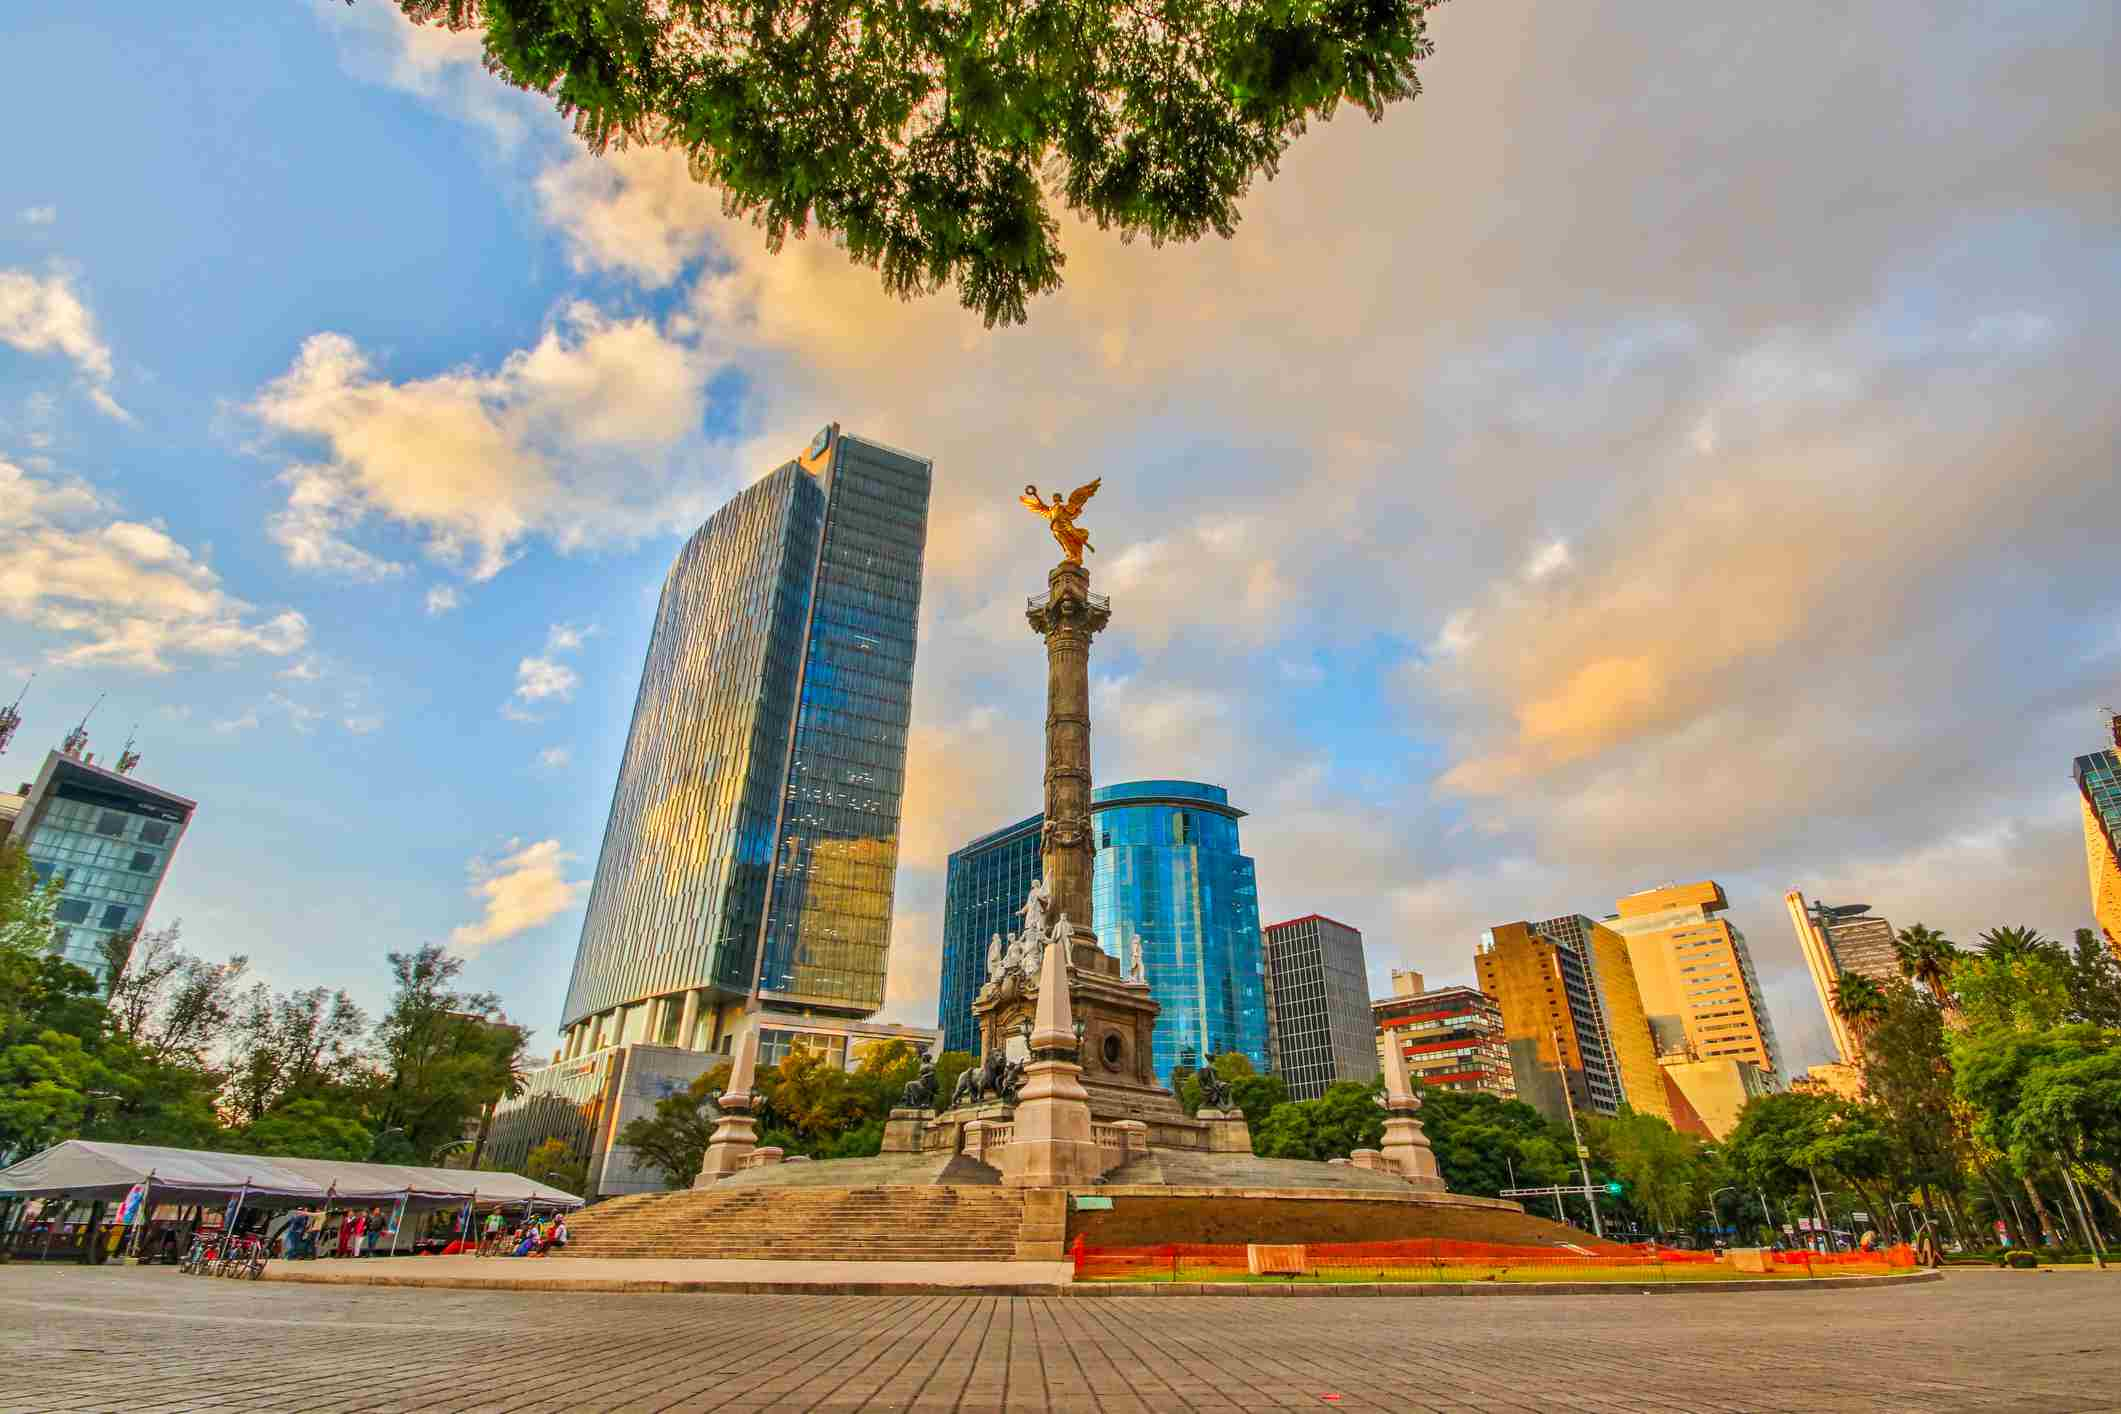 A multitude of photographs from every angle imaginable of the Angel of Independence monument in Mexico City's Reforma Avenue